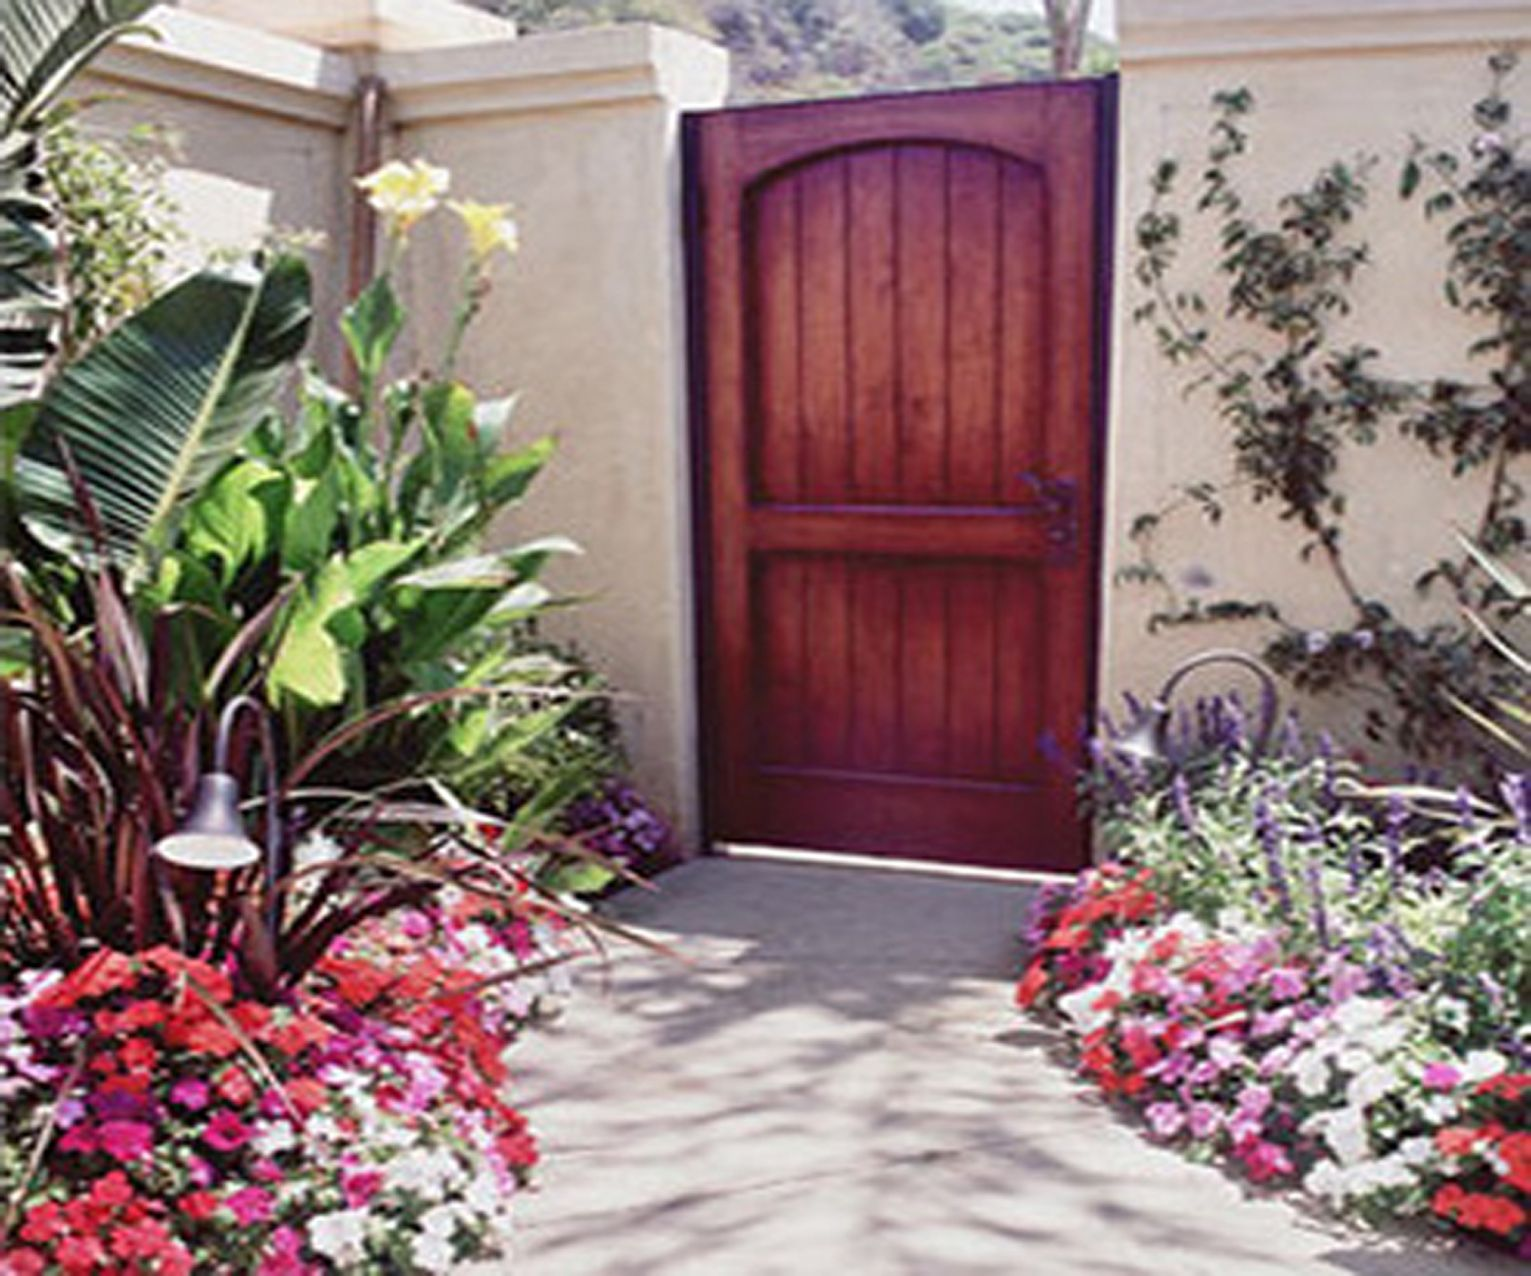 garden gate design ideas english garden design ideas roof garden